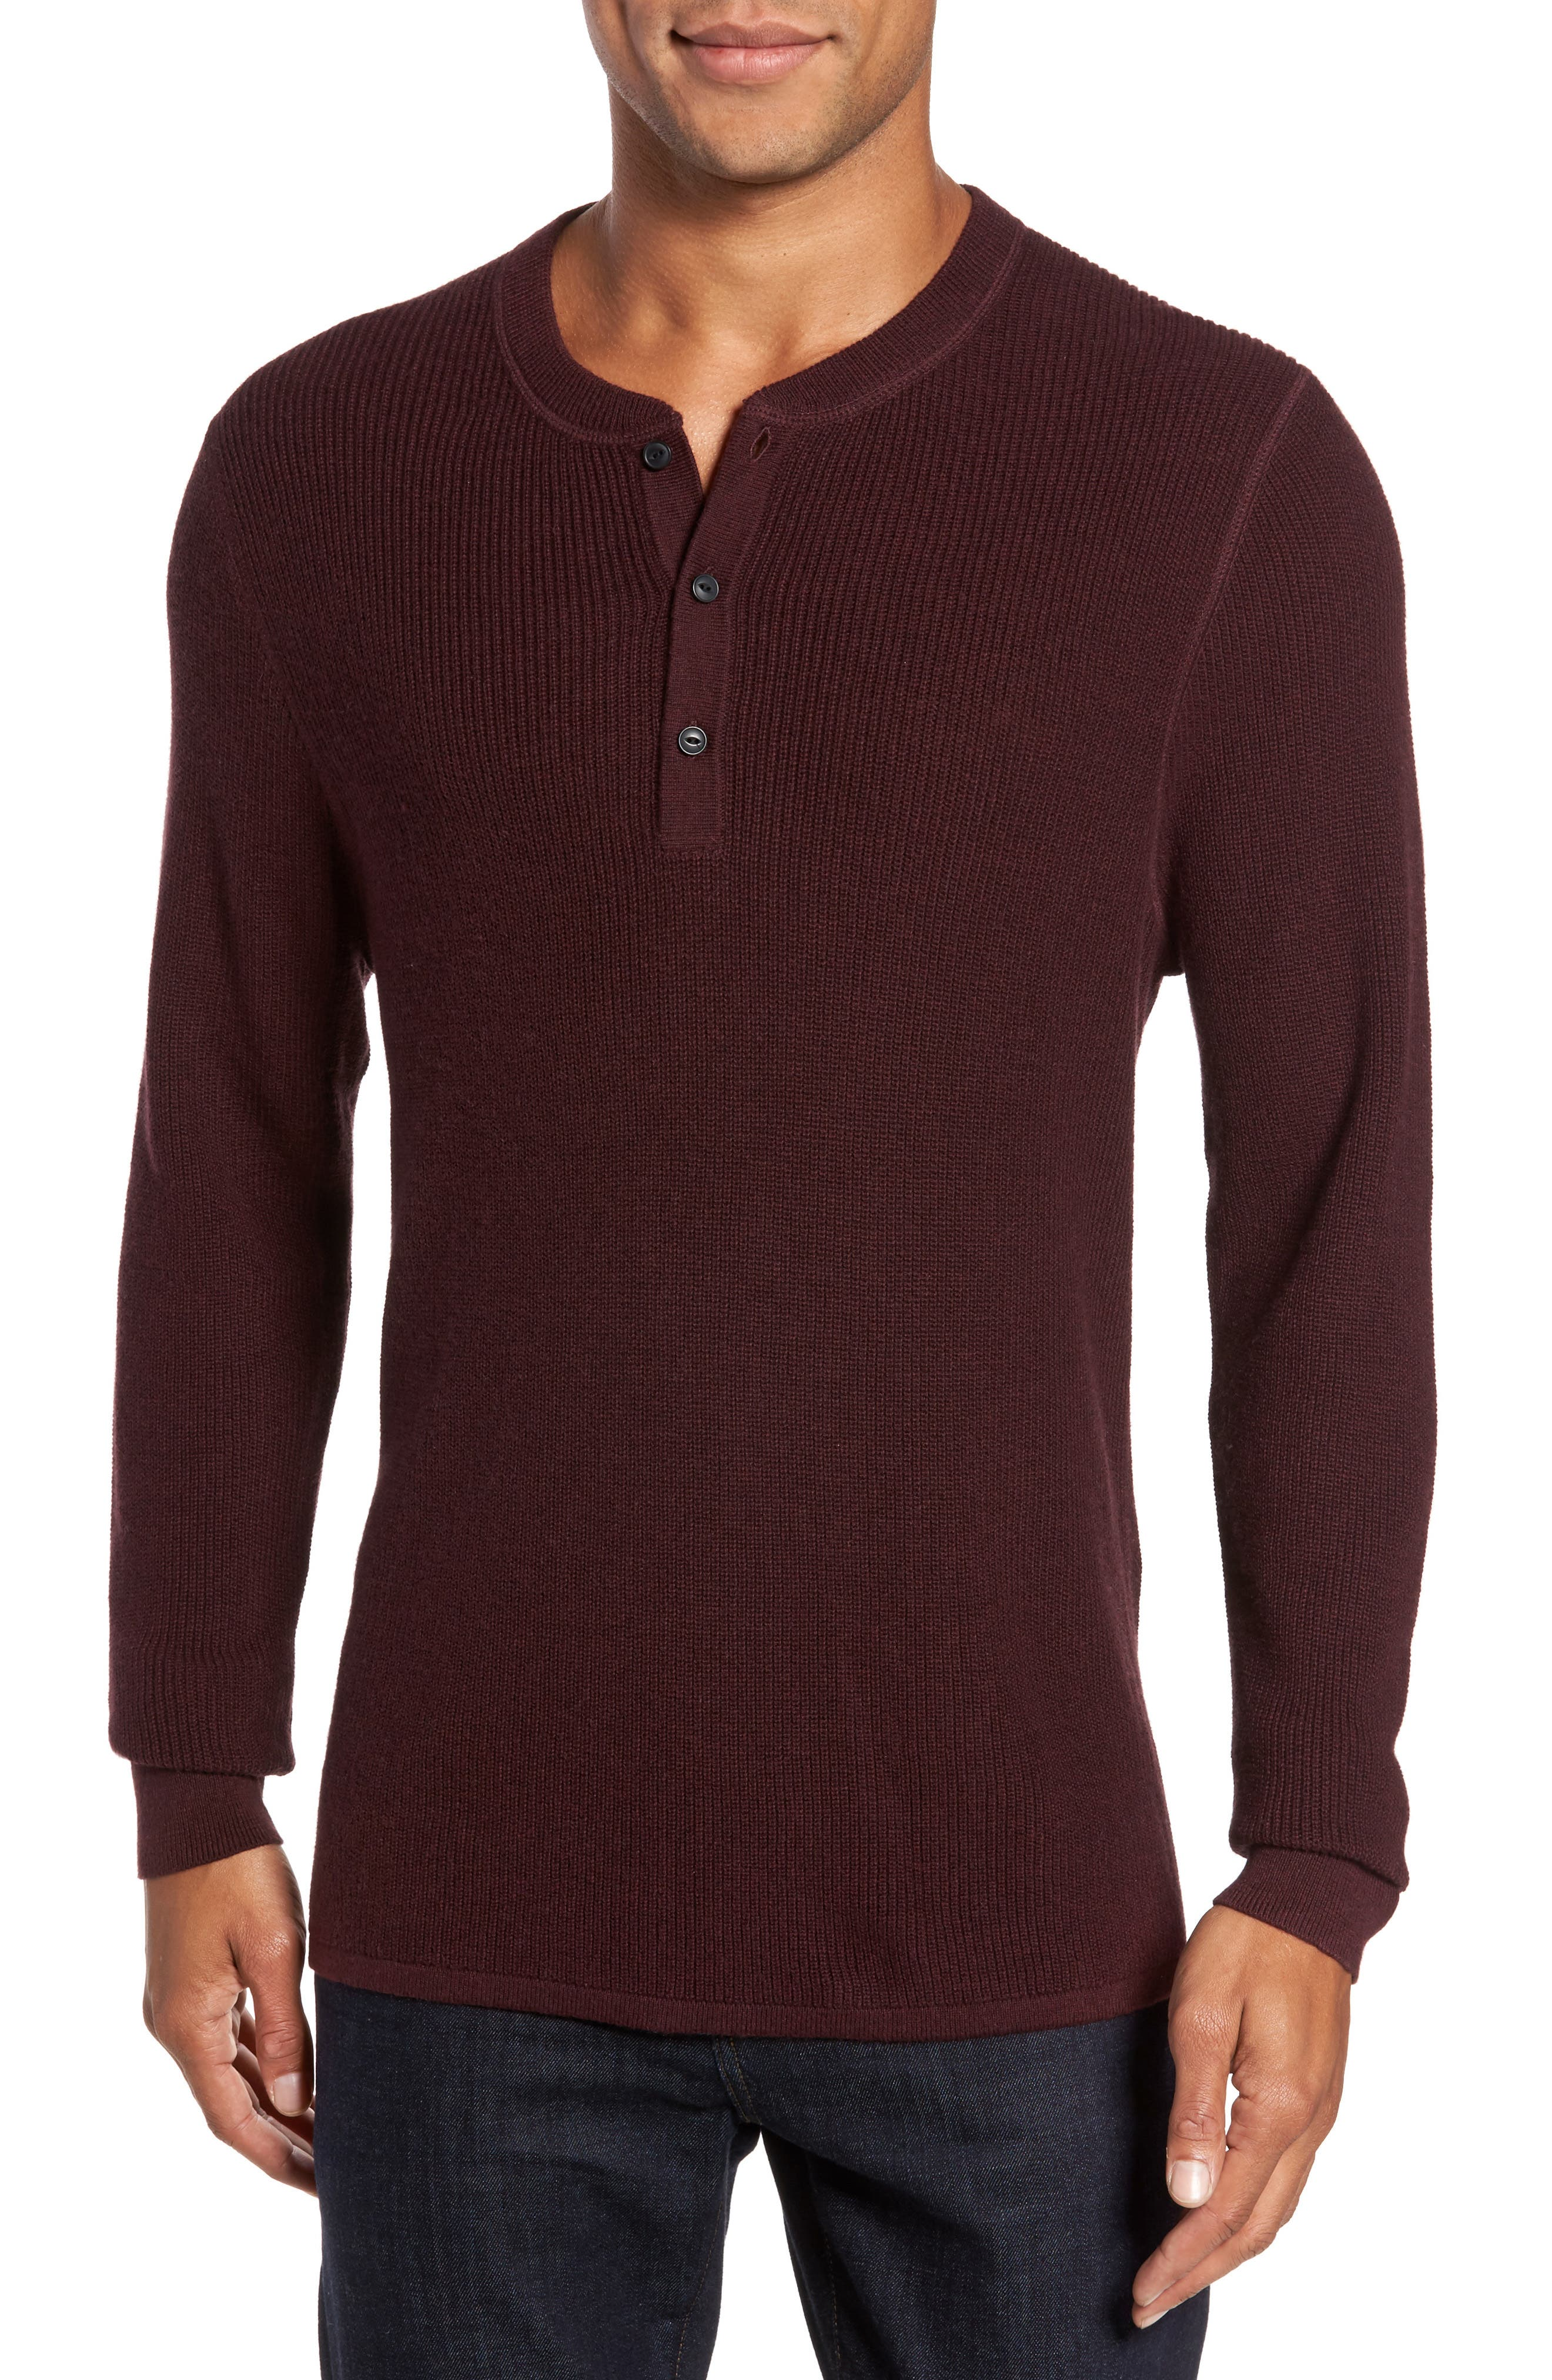 Cotton & Cashmere Henley Sweater,                             Main thumbnail 1, color,                             Burgundy Fudge Heather